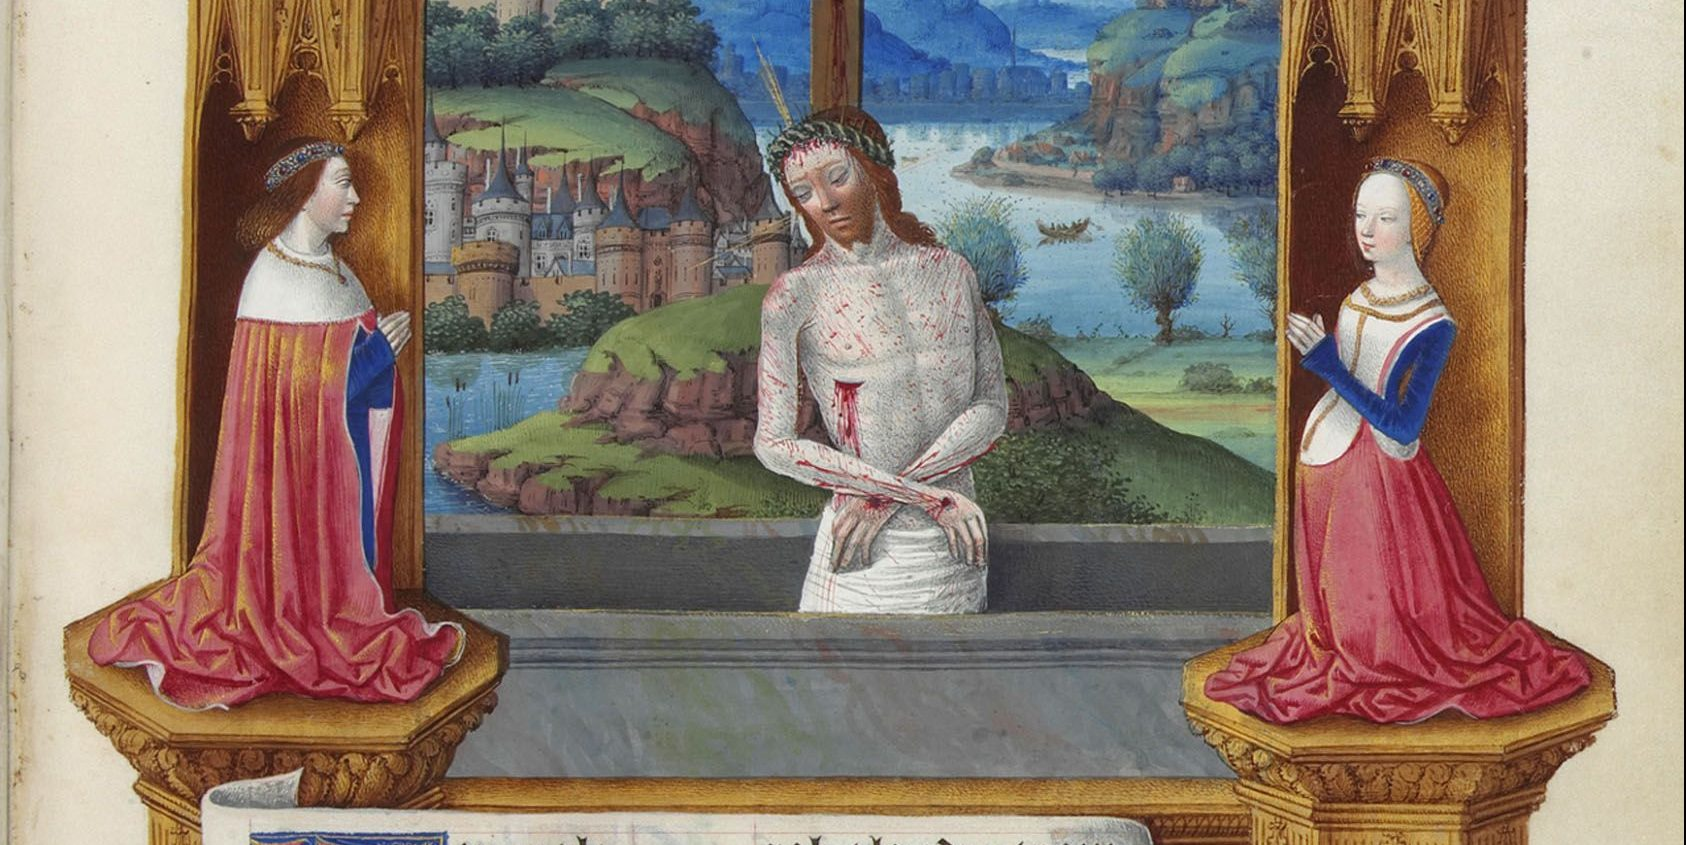 BOOK OF HOURS; MAN OF SORROWS